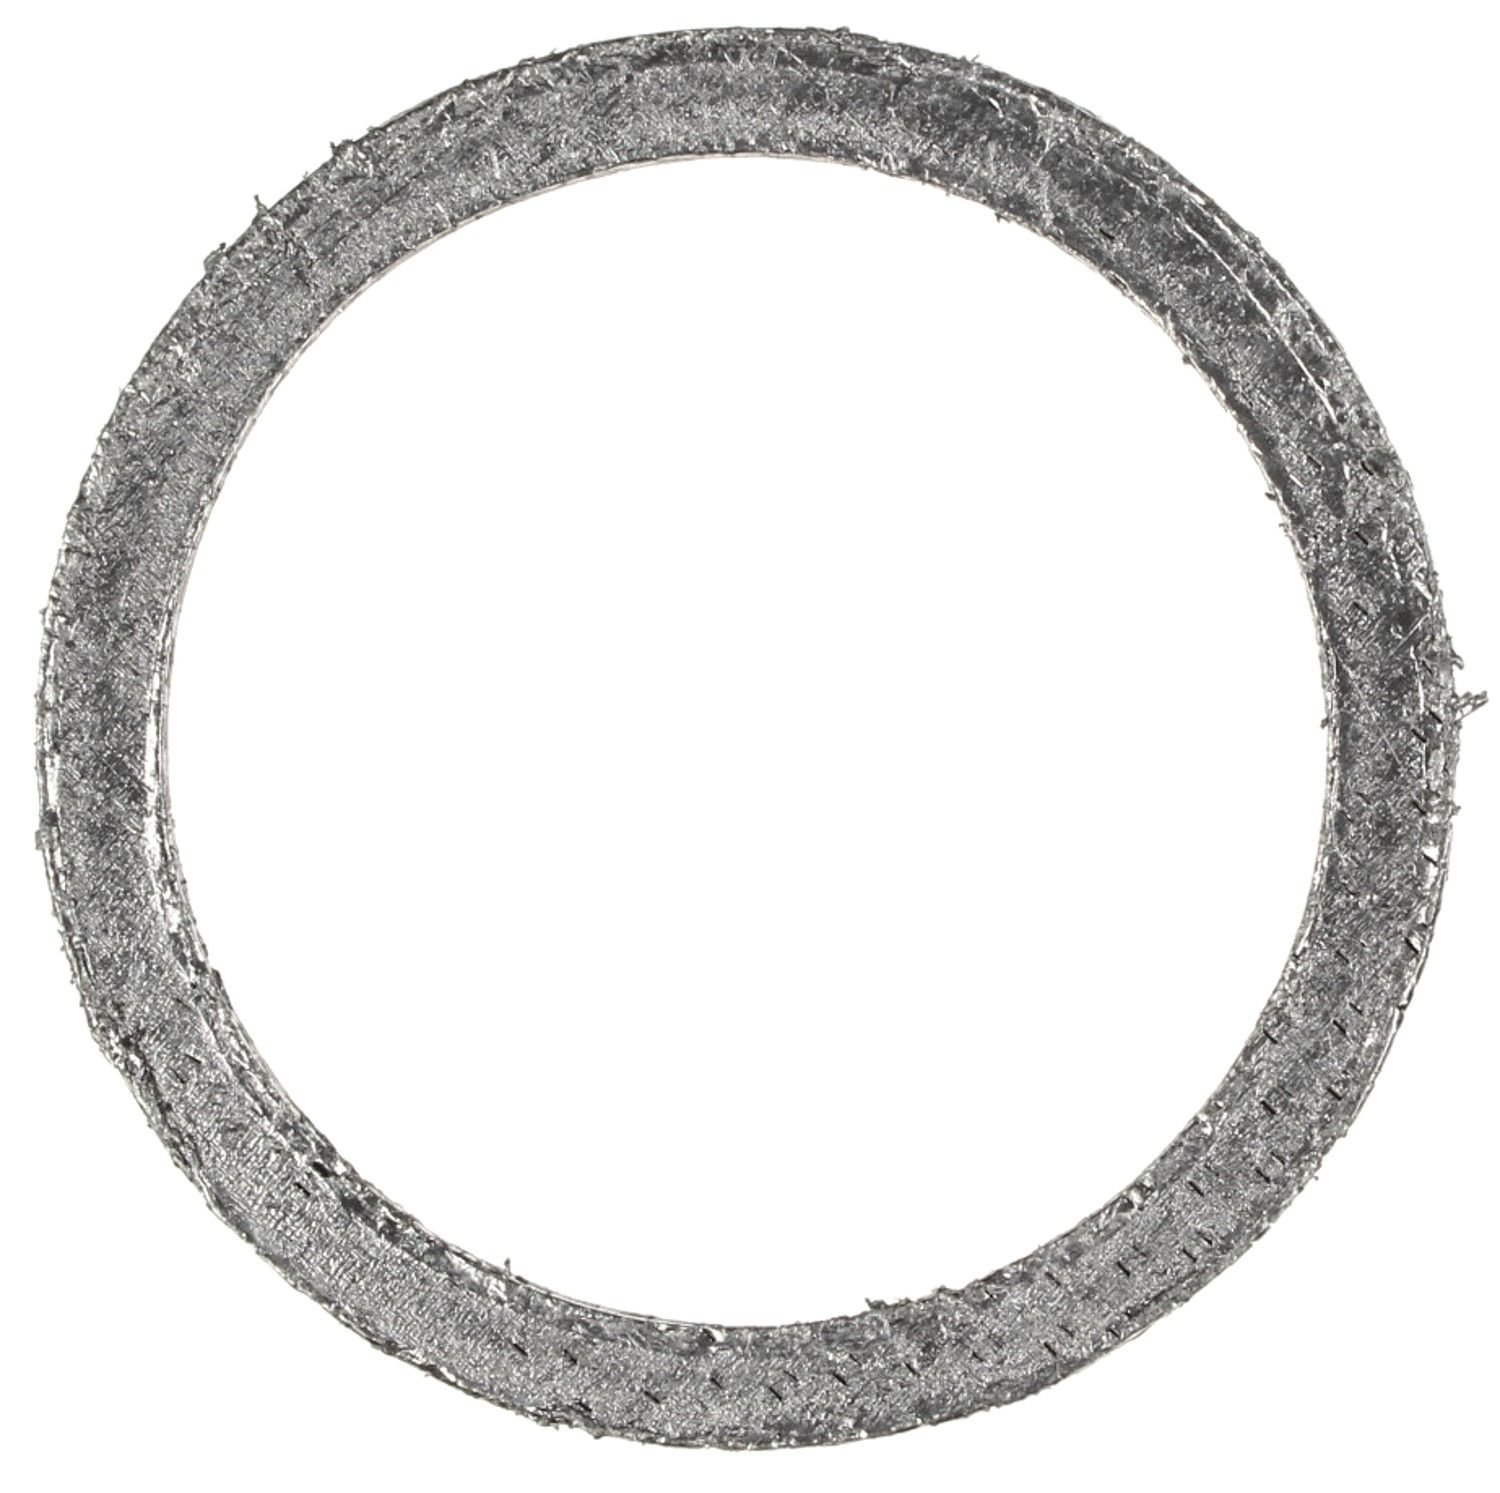 1994 chevrolet llv catalytic converter gasket front 4 cyl 2 2l victor gaskets f10131 flange type graphite with 51mm i d